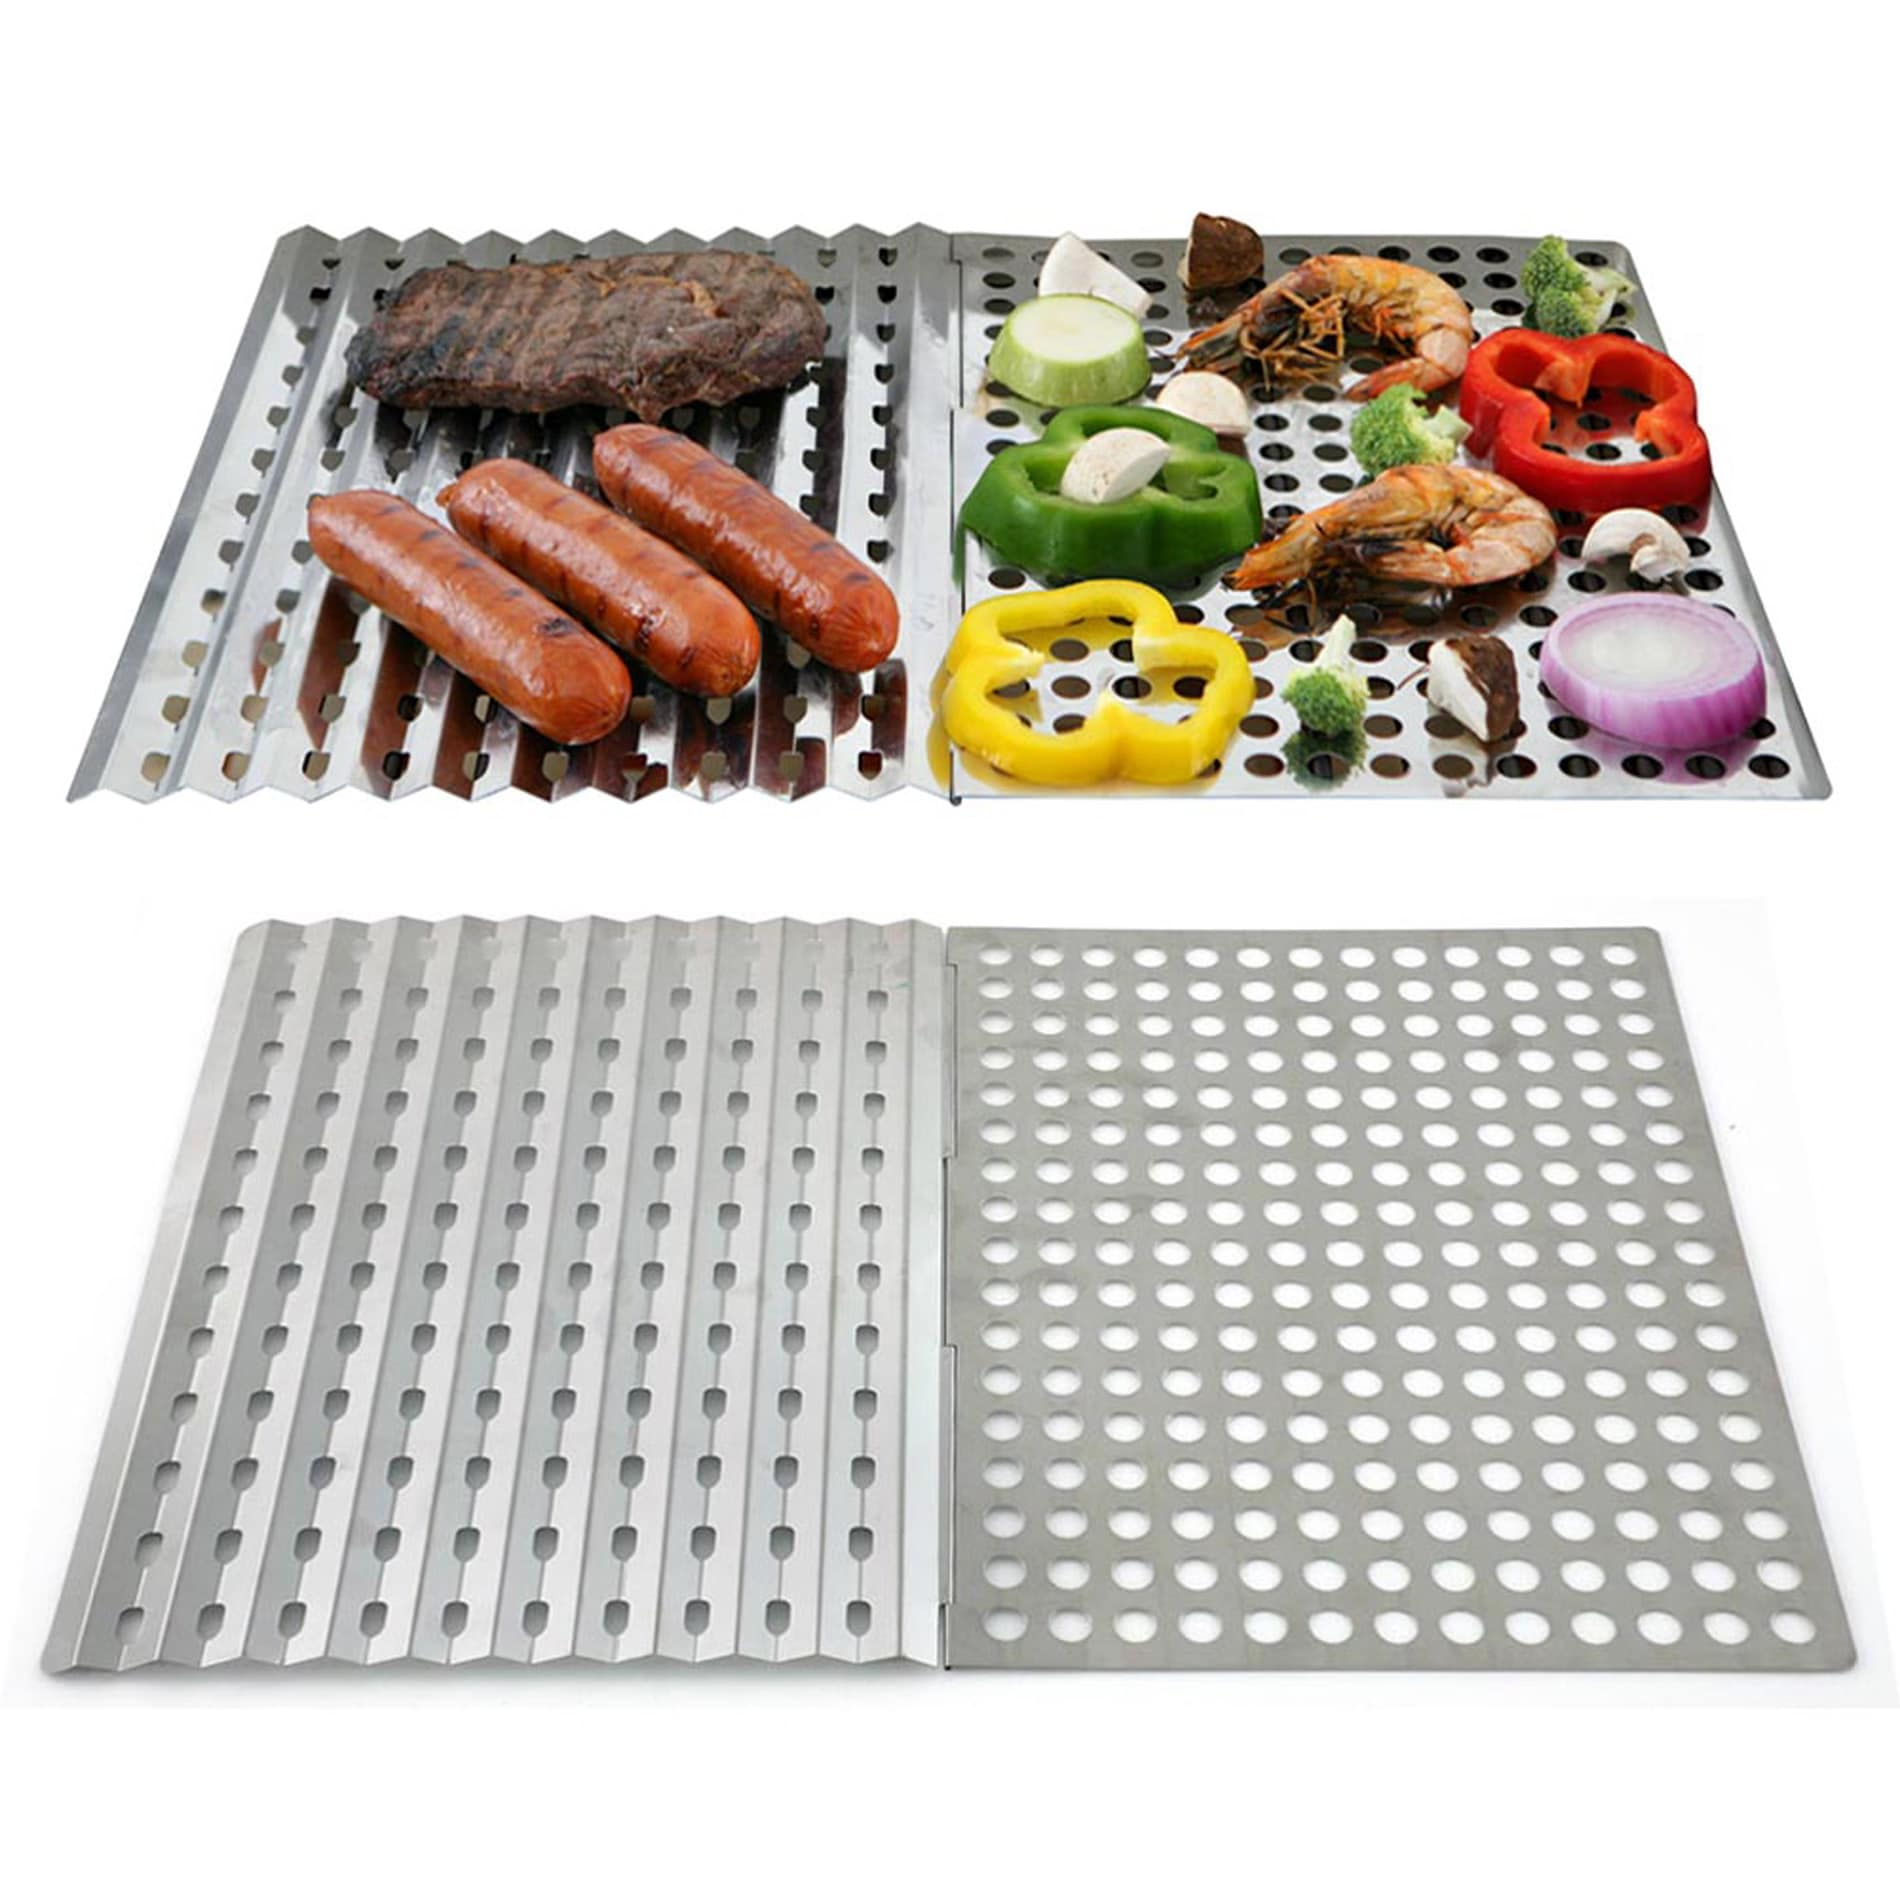 Mr. BBQ Reusable Stainless Steel Grill Sheet Pack